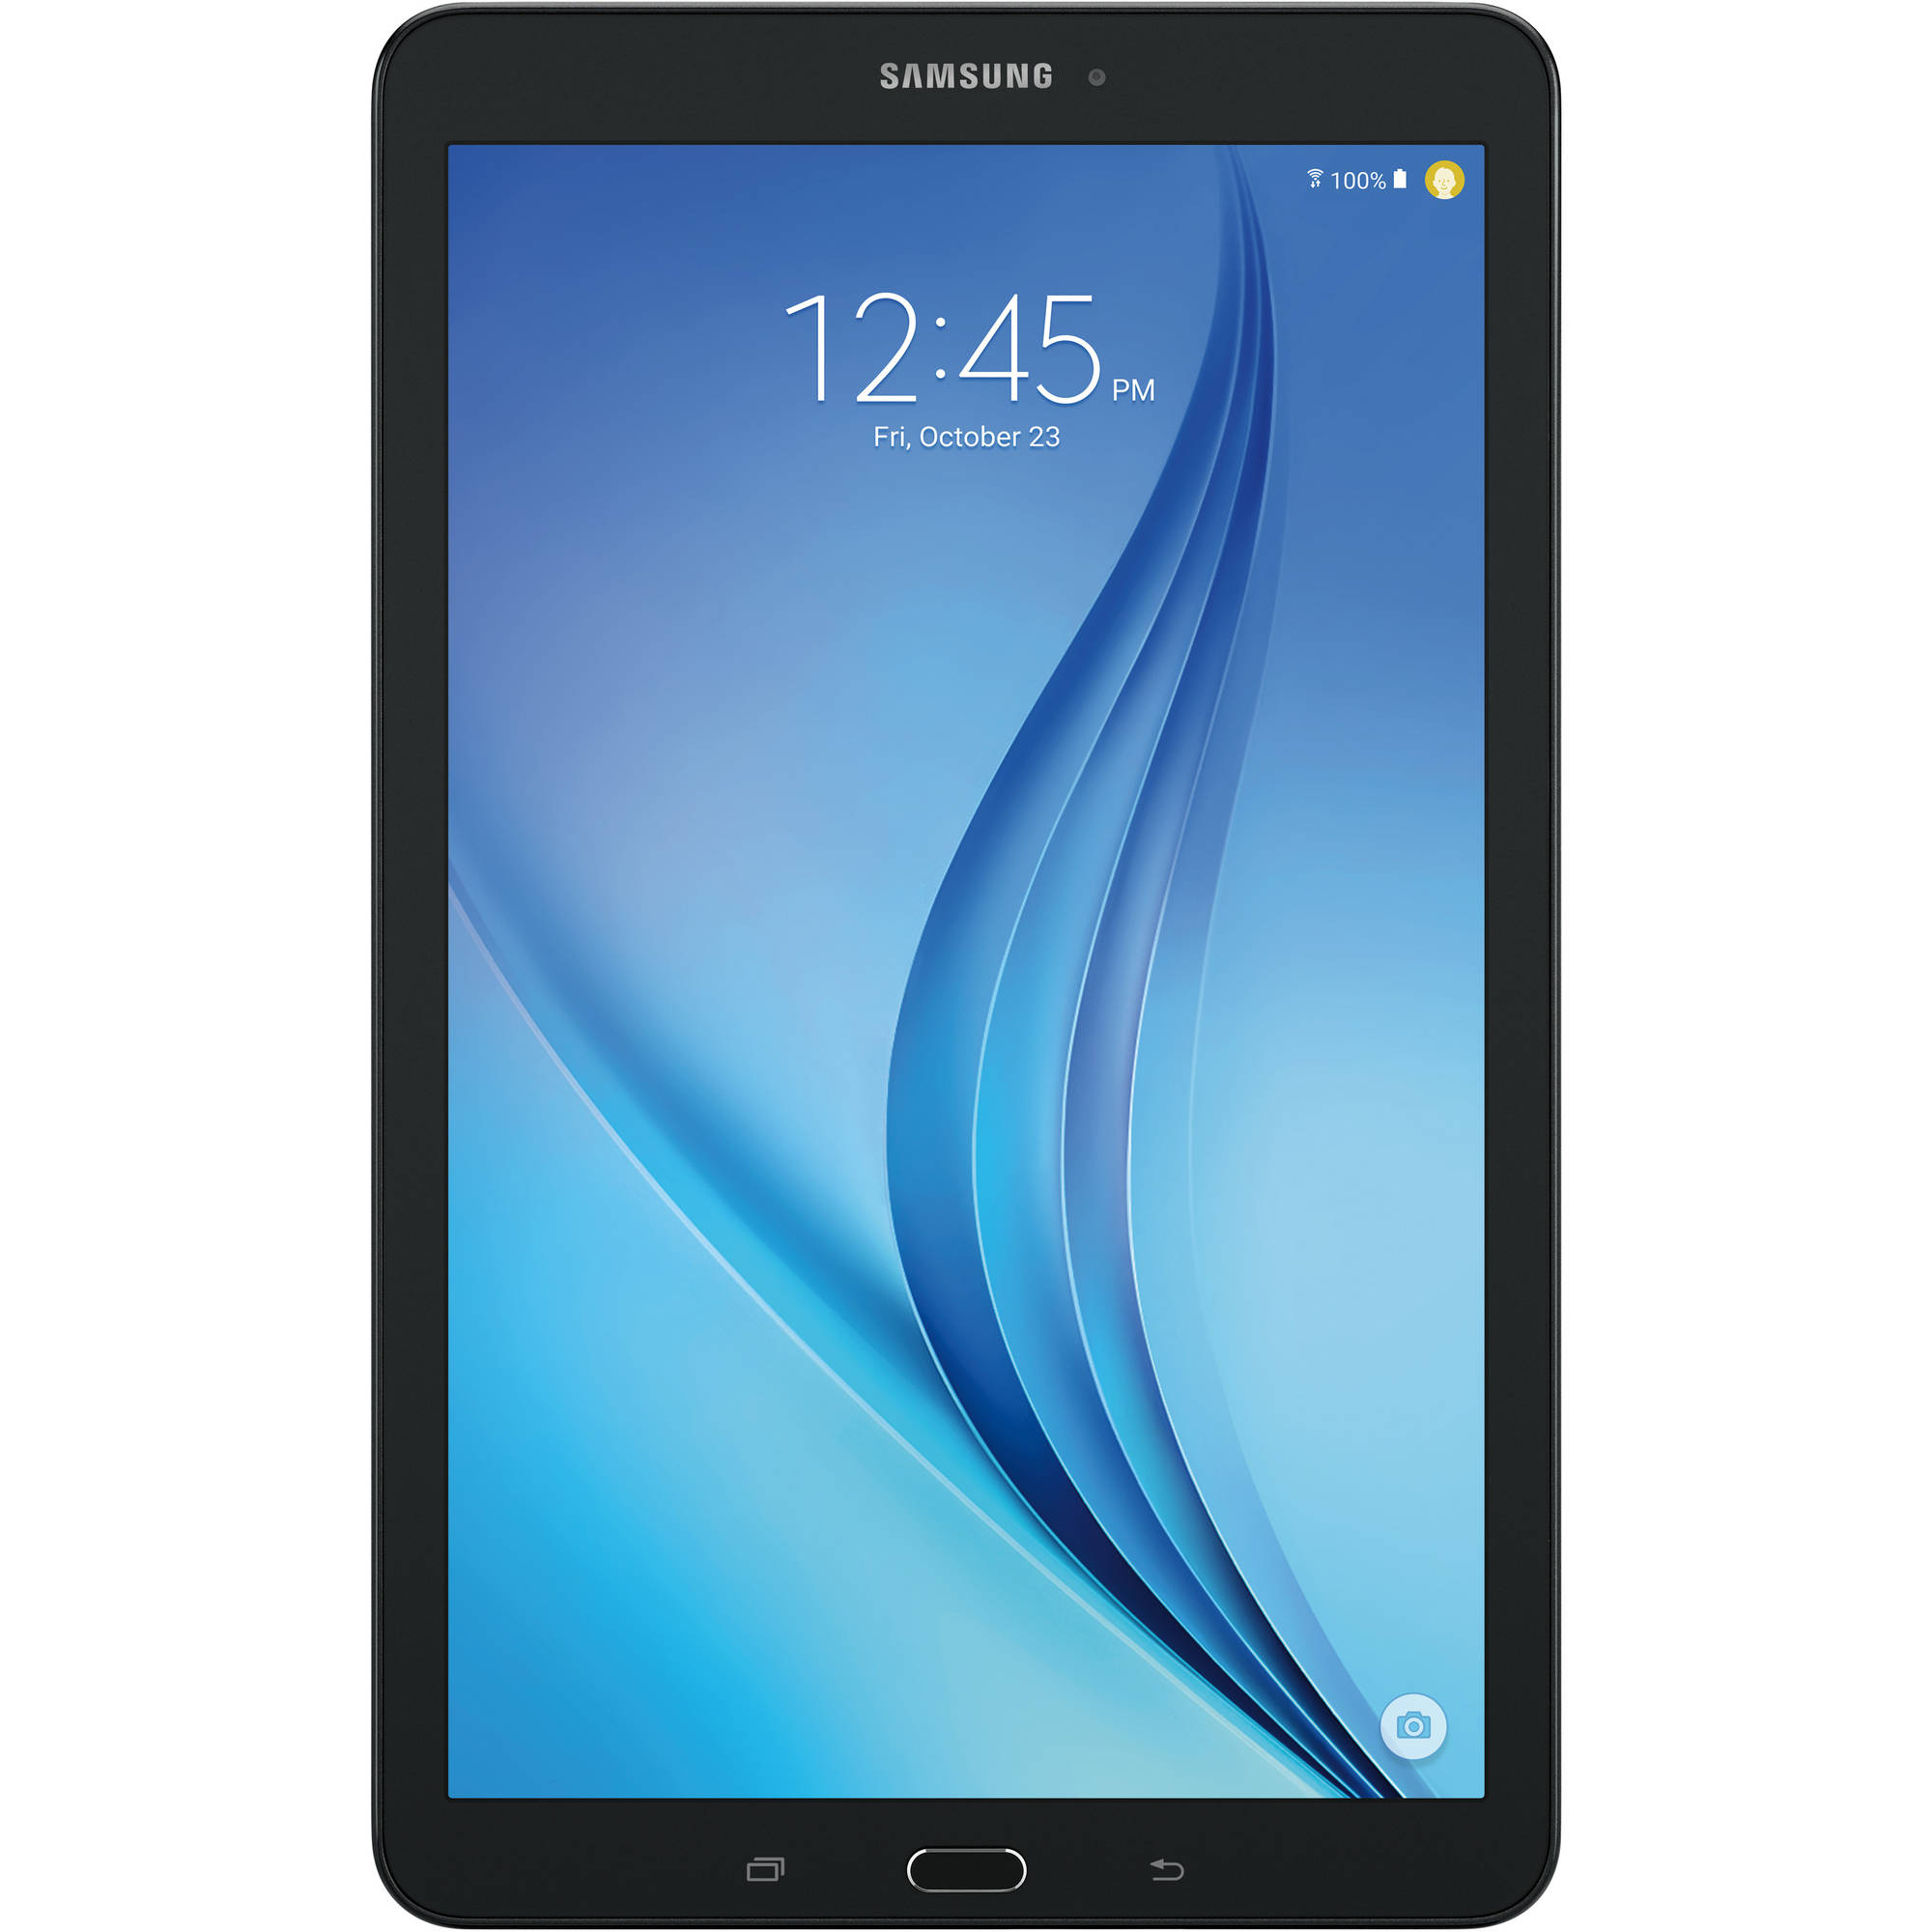 "Refurbished Samsung Galaxy Tab E with WiFi 9.6"" Touchscreen Tablet PC Featuring Android 5.1 (Lollipop) Operating System"